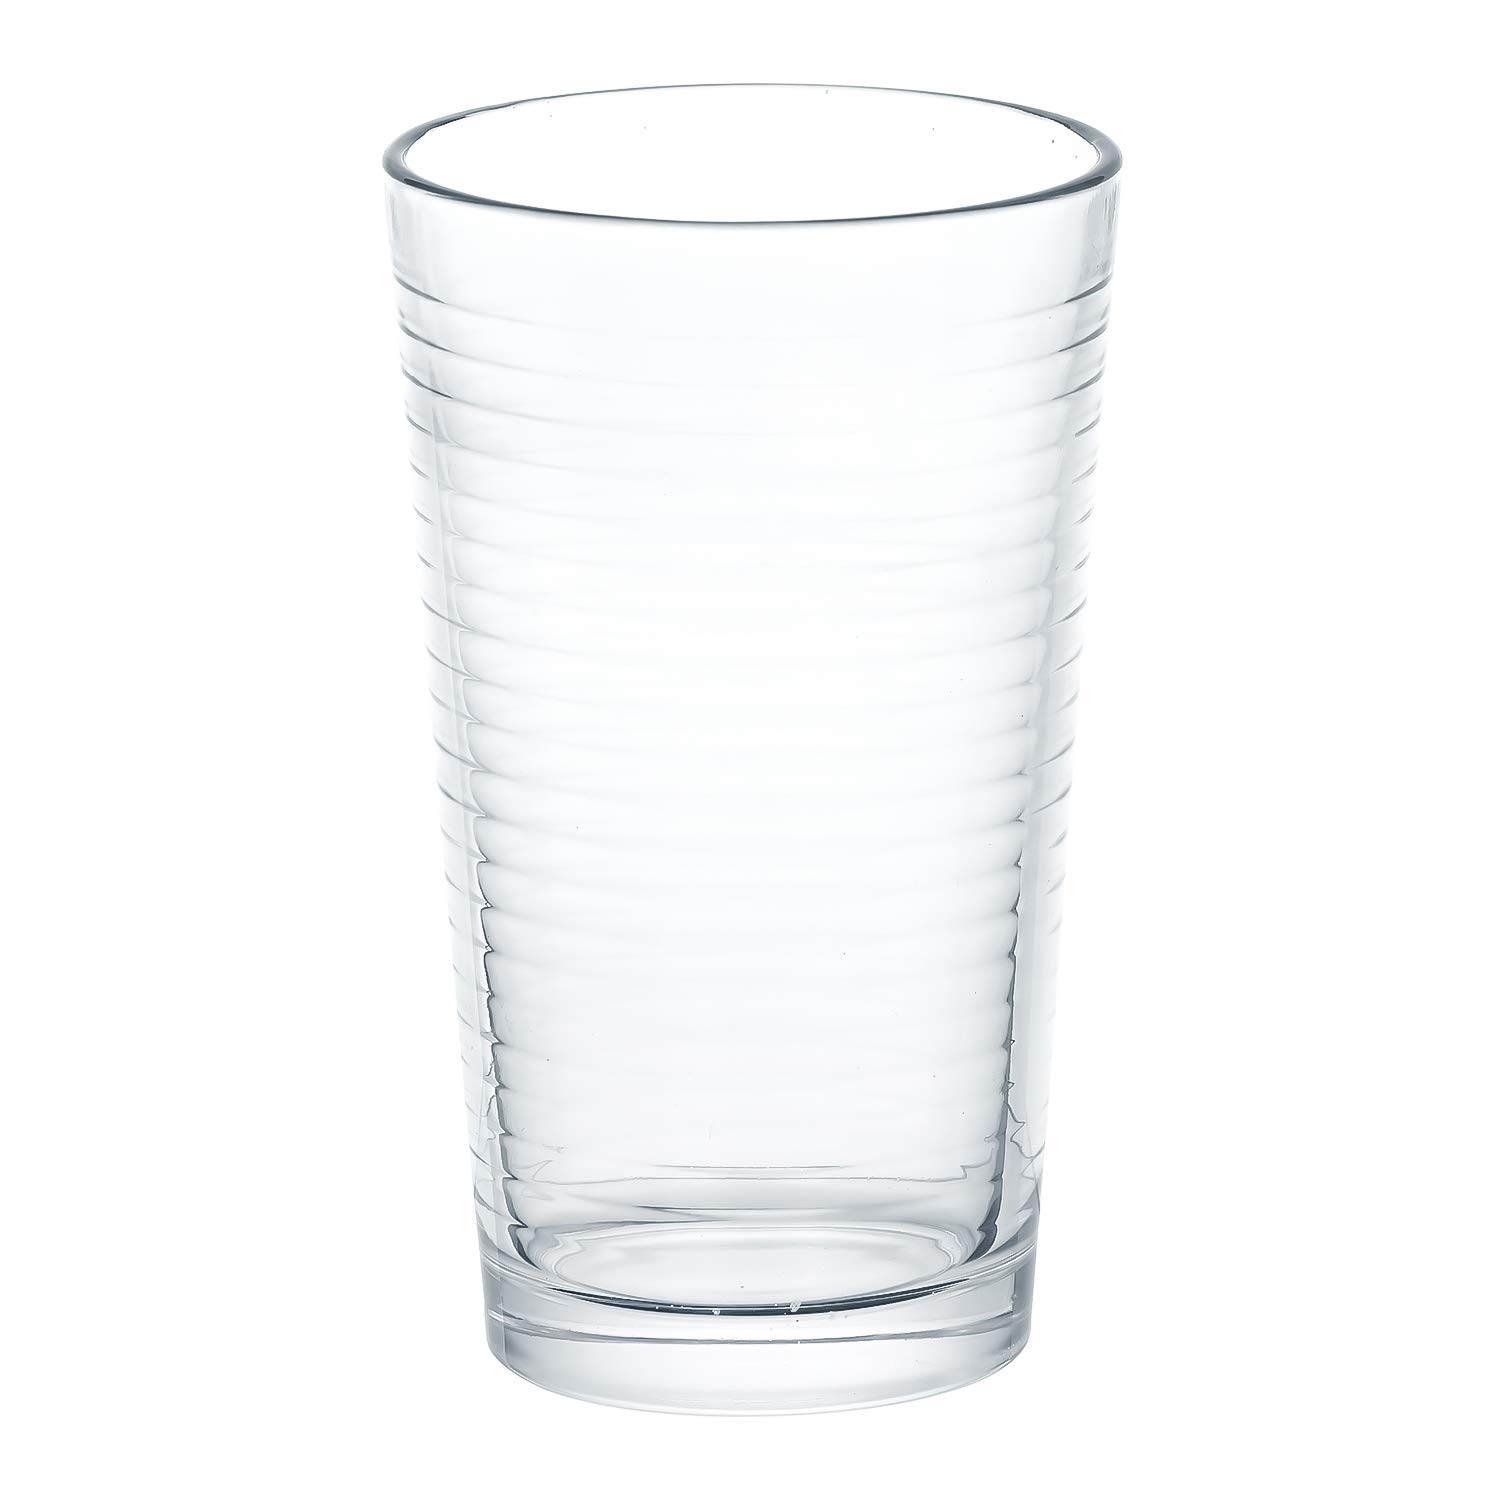 Clear Glass Tumbler - 270 ml, Set of 4